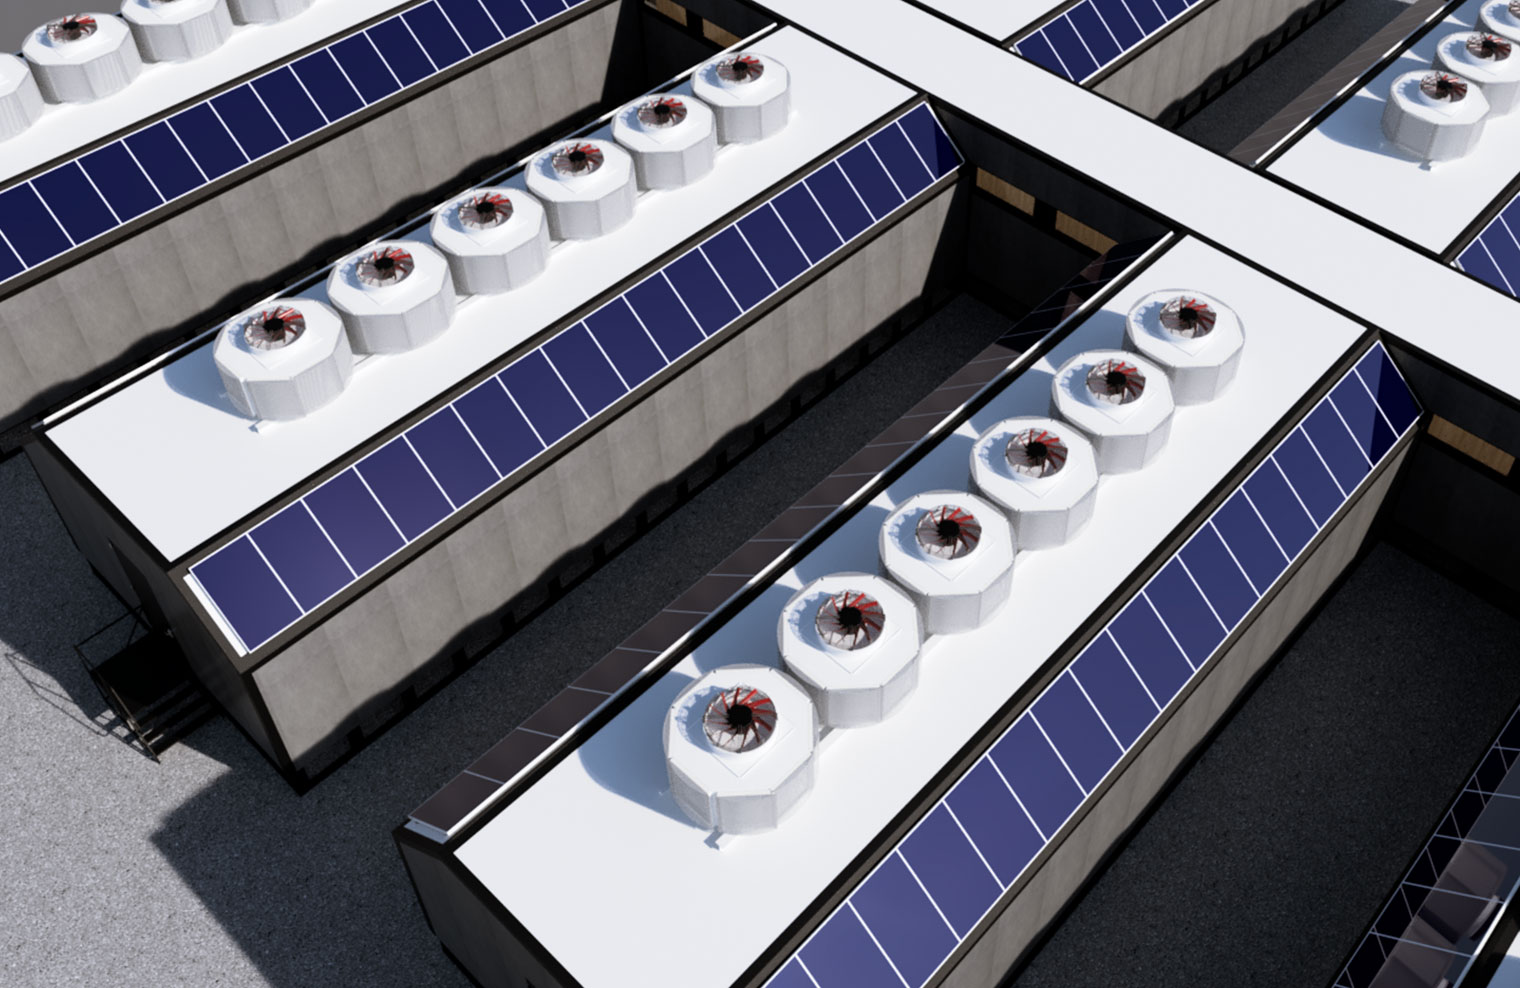 Edged rapid deployment modular data center pods, showing zero-water cooling units and integrated solar panels